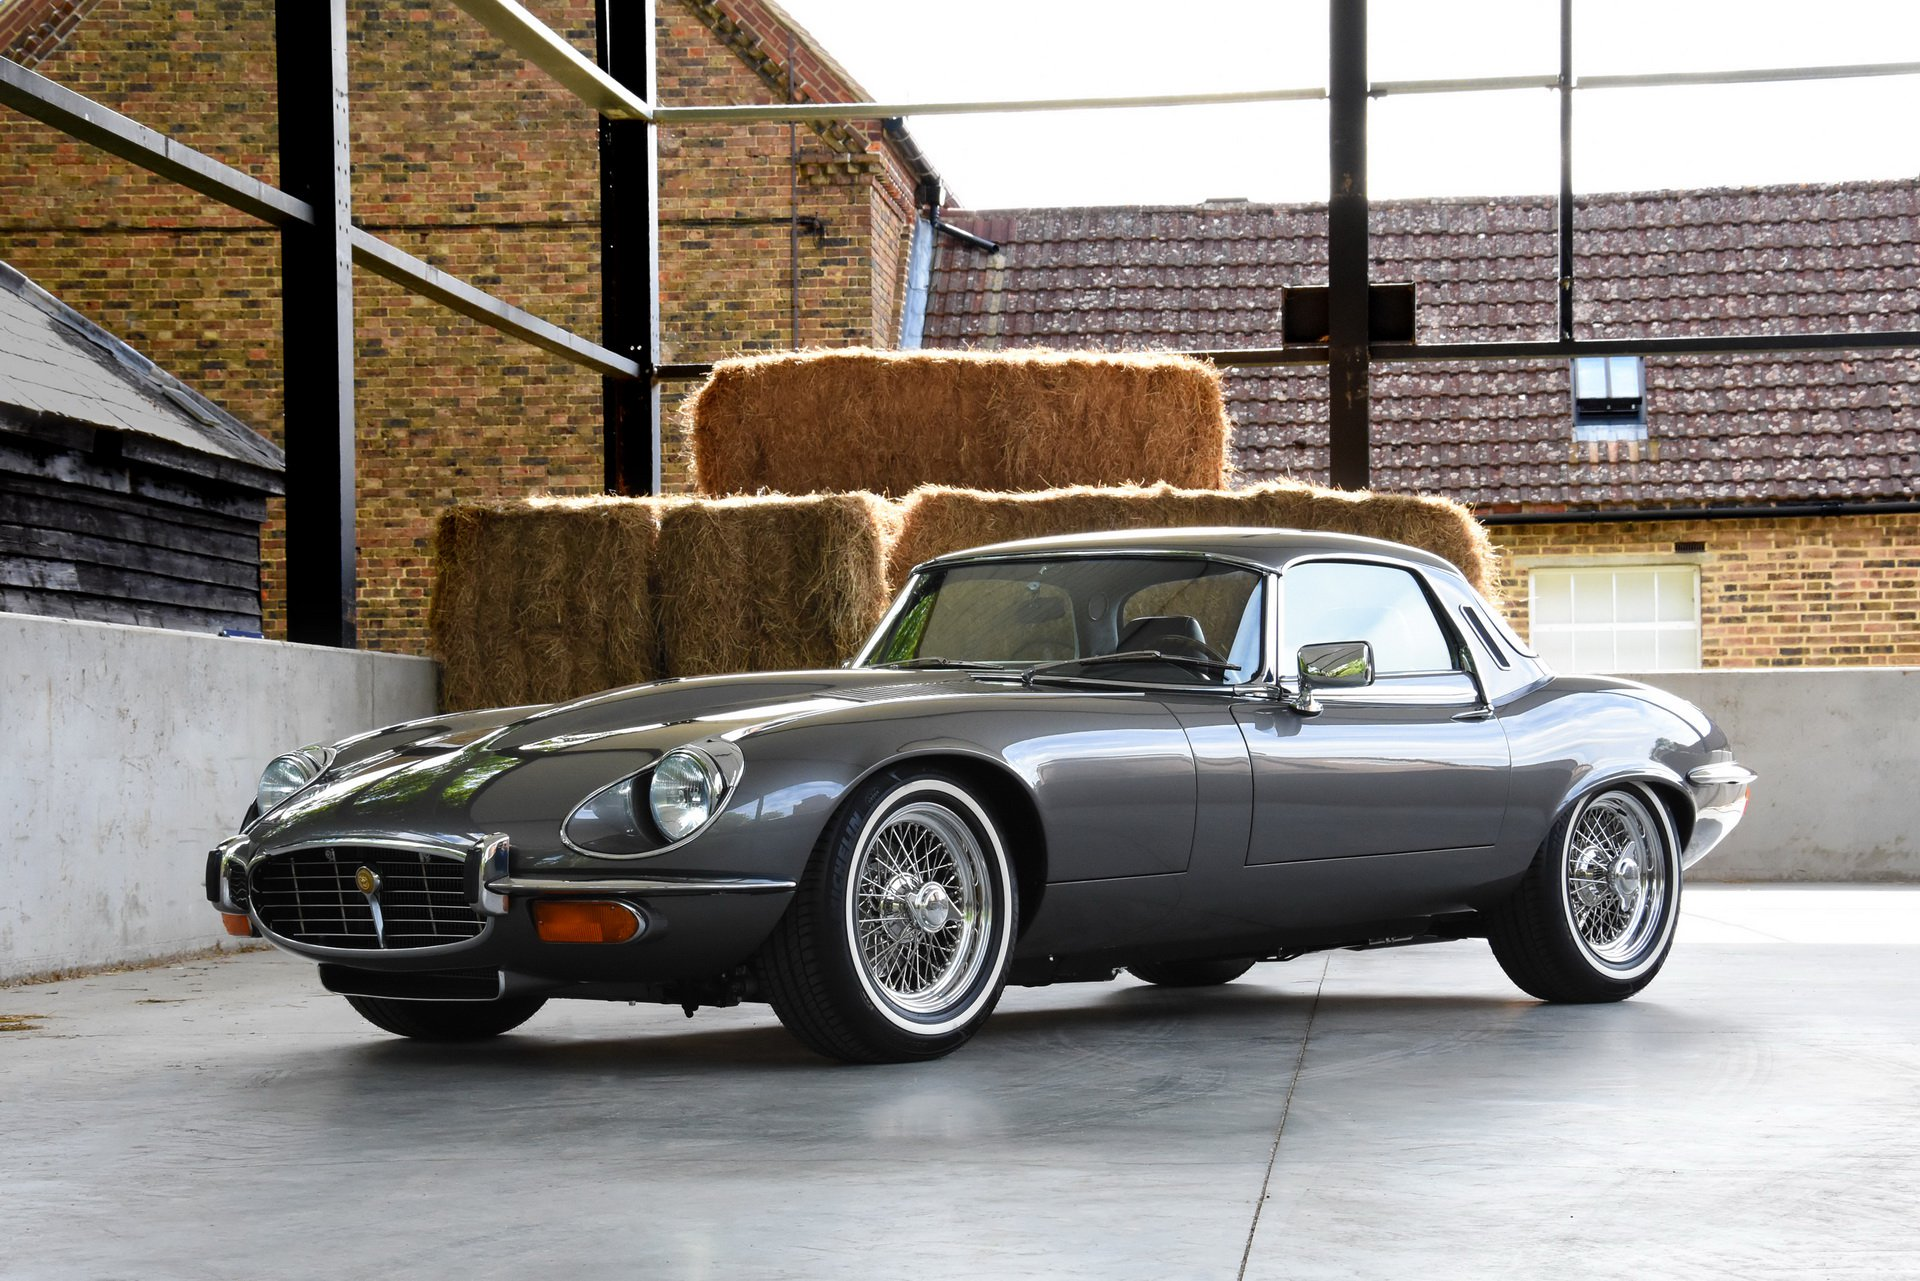 Restomod Jaguar E-Type 1